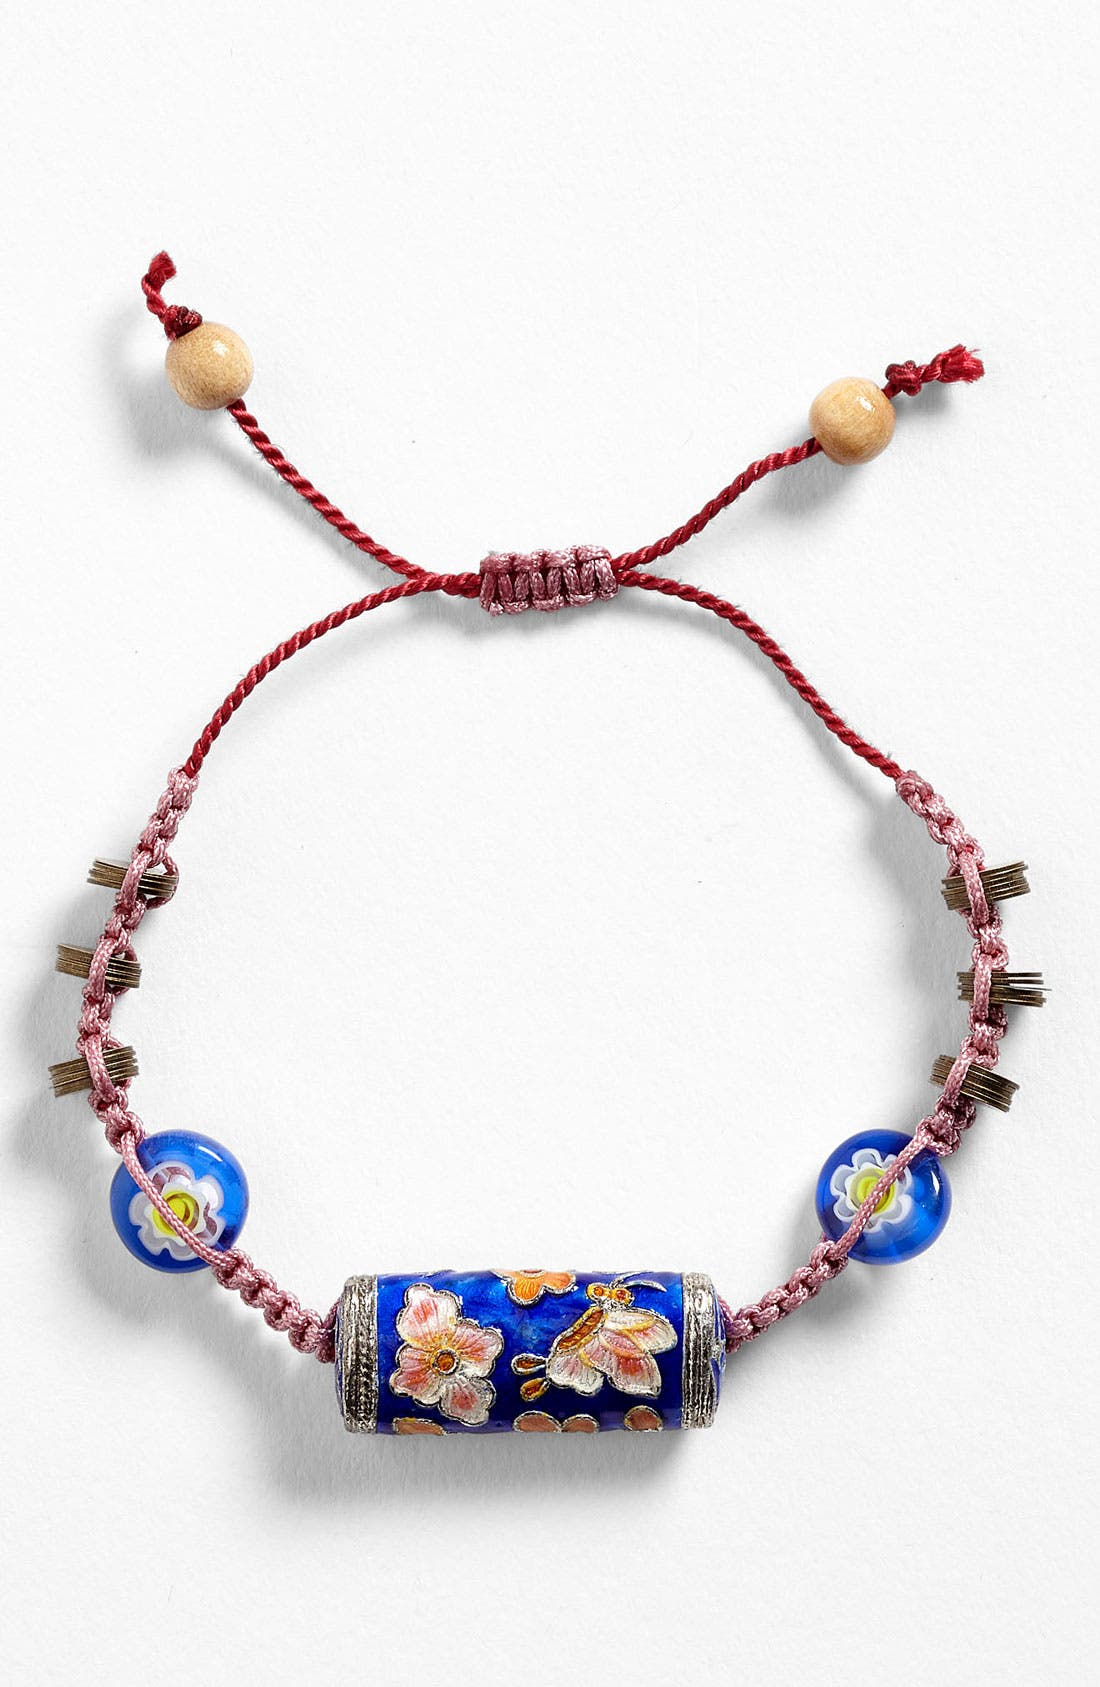 Alternate Image 1 Selected - Bonnie Jonas 'Tranquil' Cloisonné Friendship Bracelet